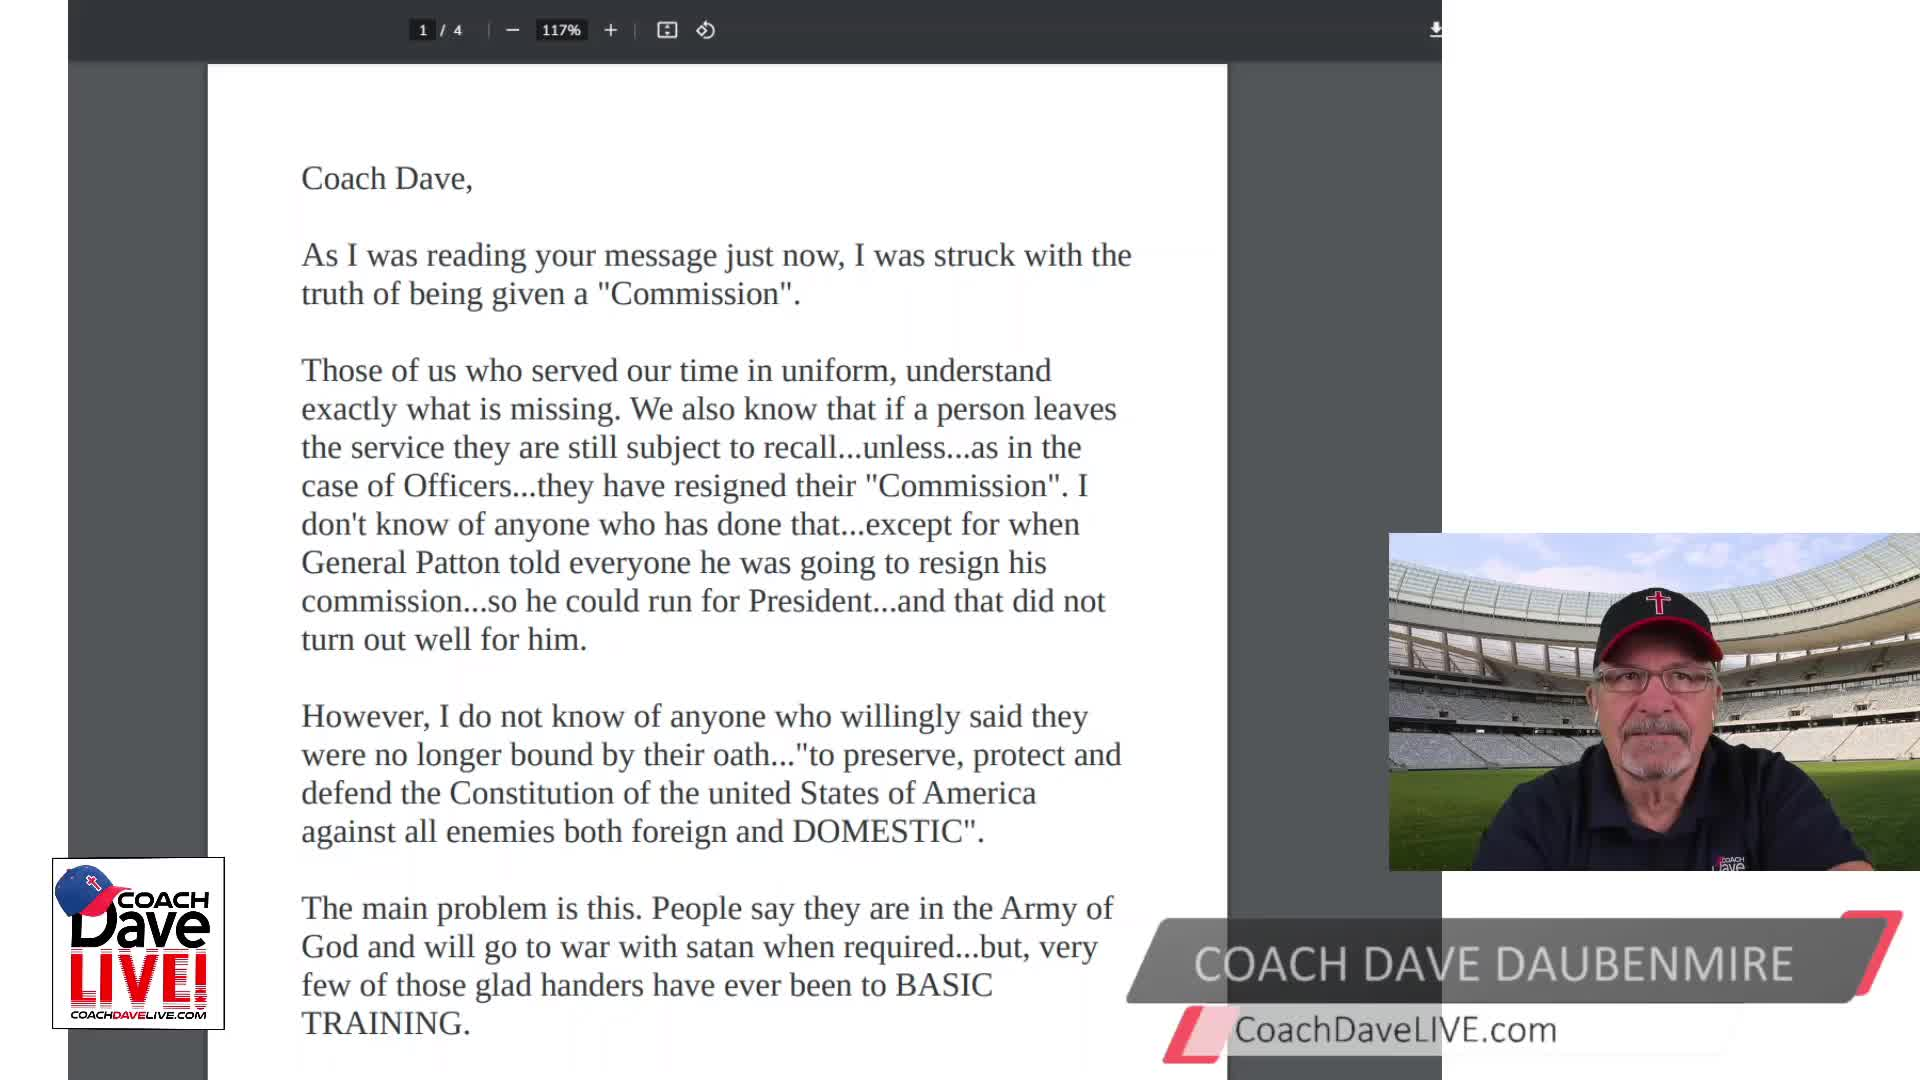 Coach Dave LIVE | 4-5-2021 | EASTER EGGS FROM HELICOPTERS? REALLY?